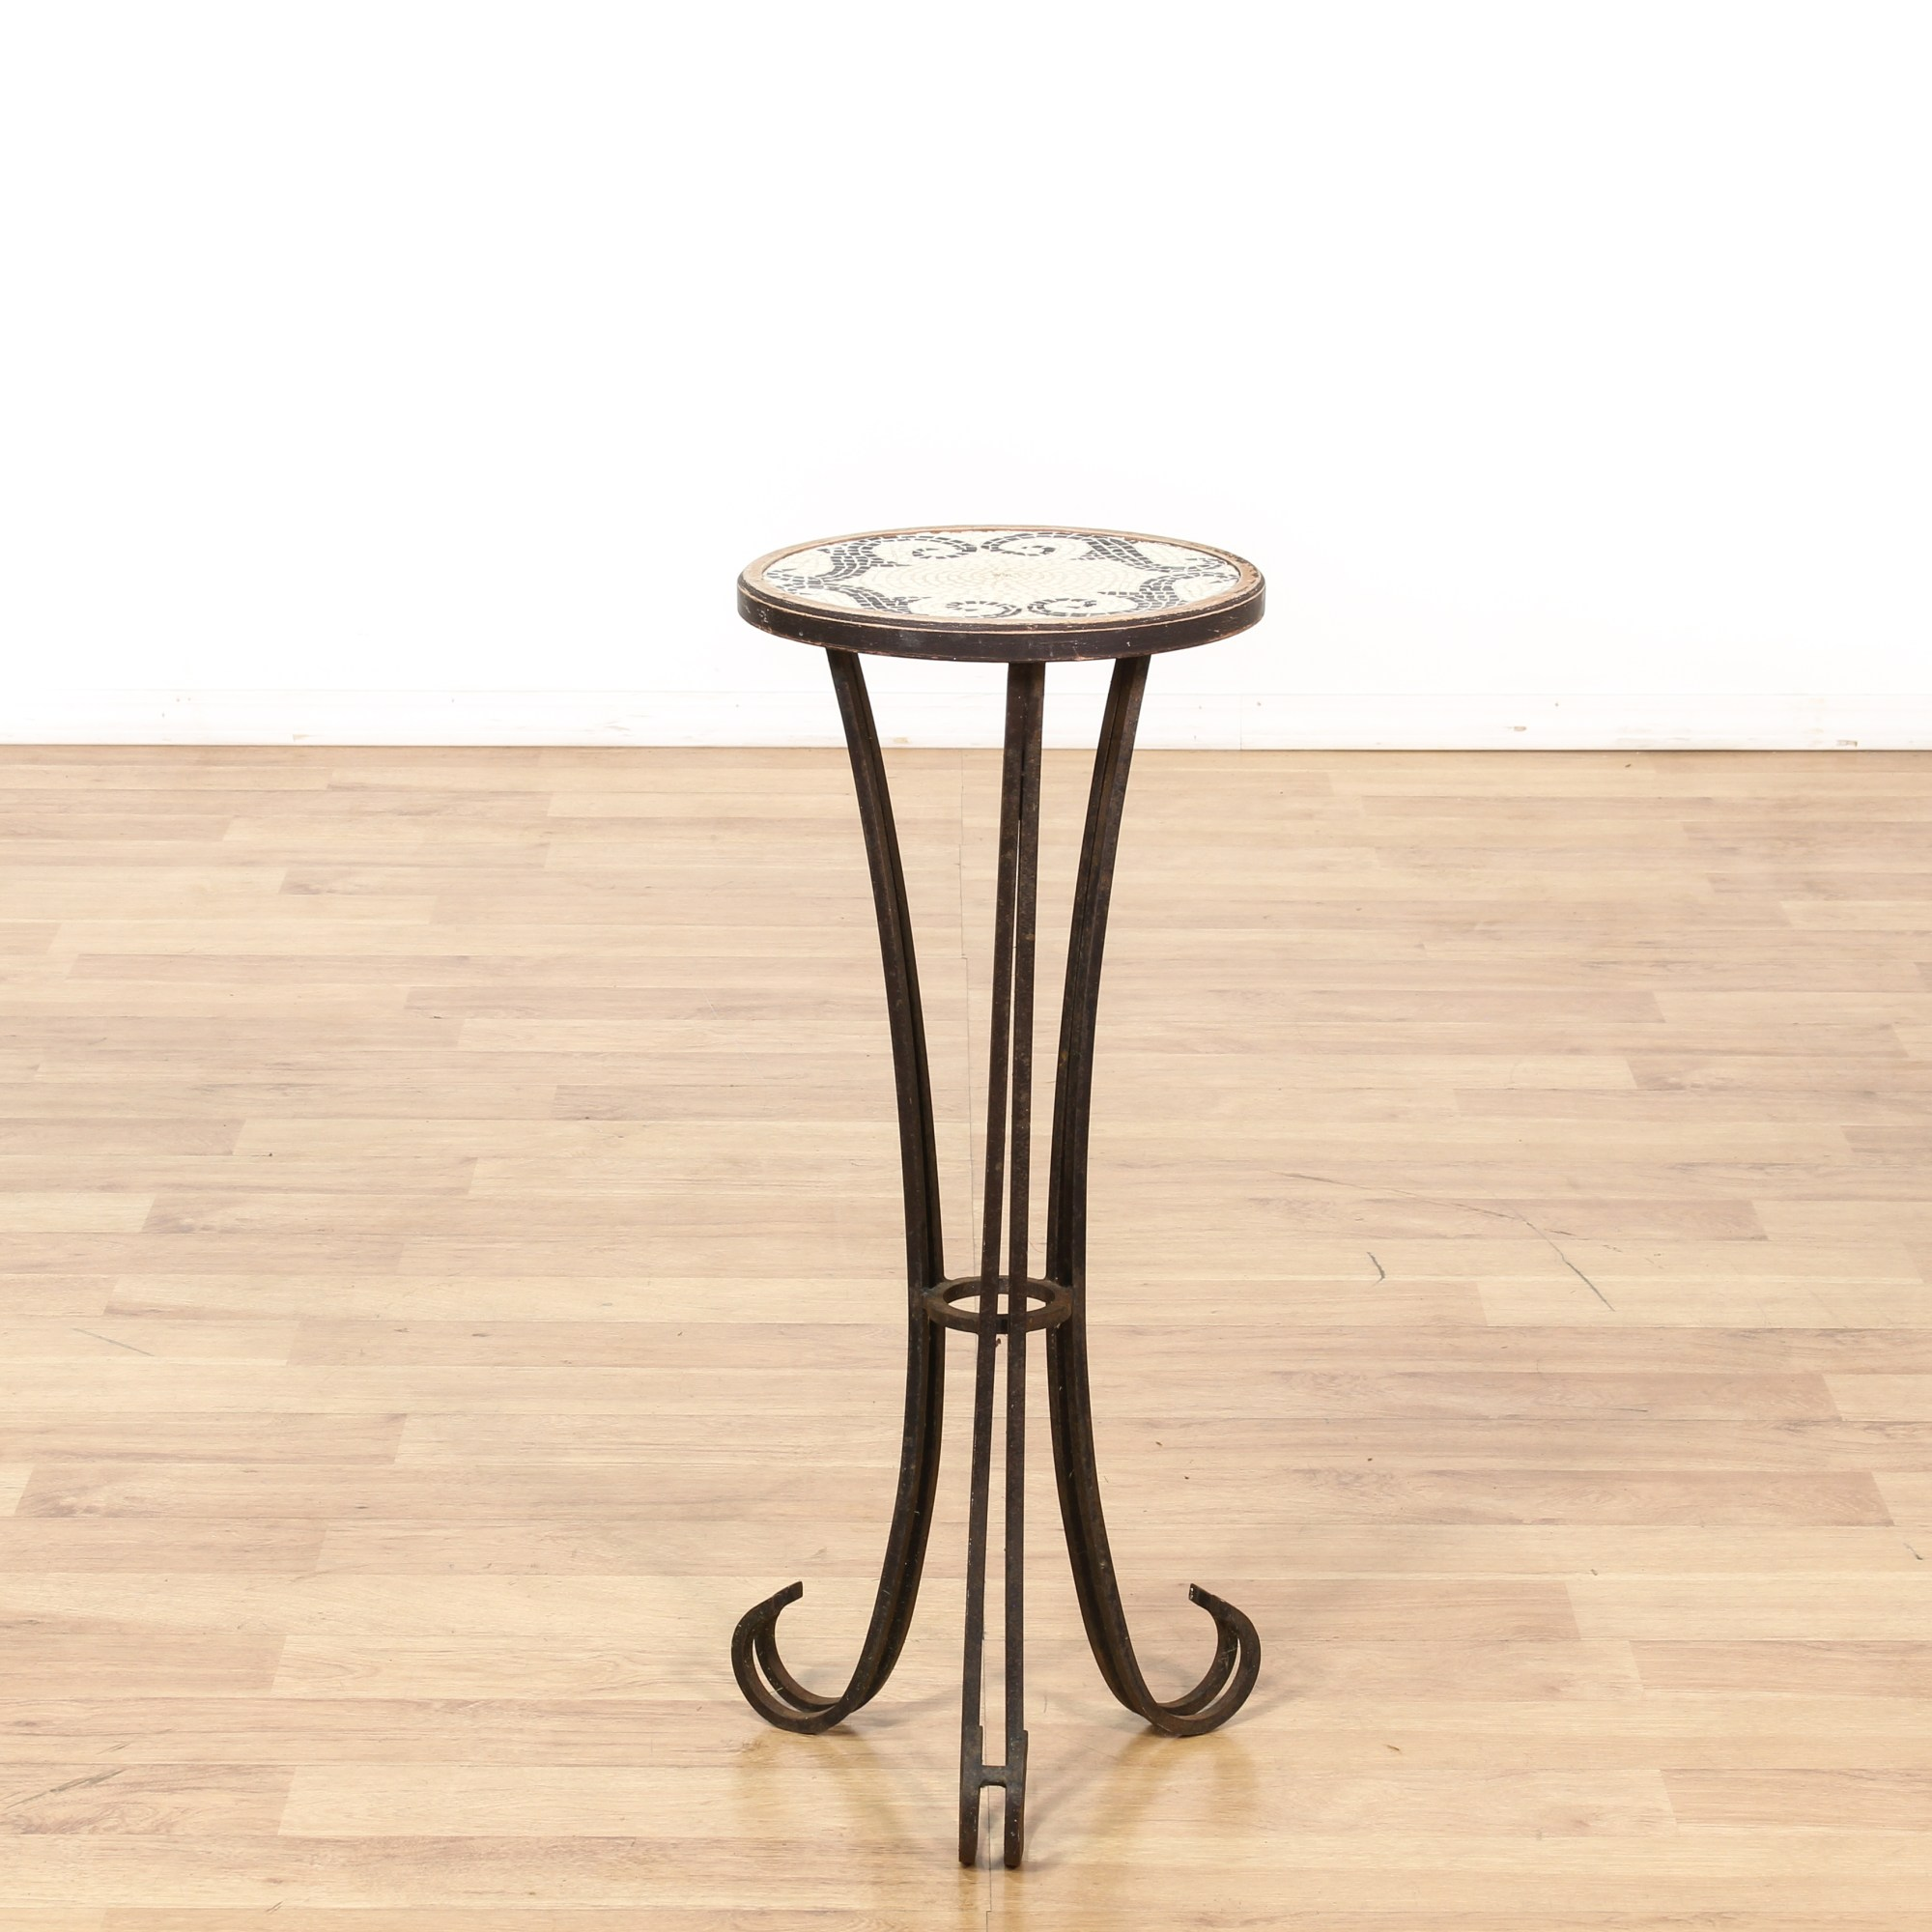 Black Wire Plant Stand Round Mosaic Tile Top Metal Plant Stand Loveseat Vintage